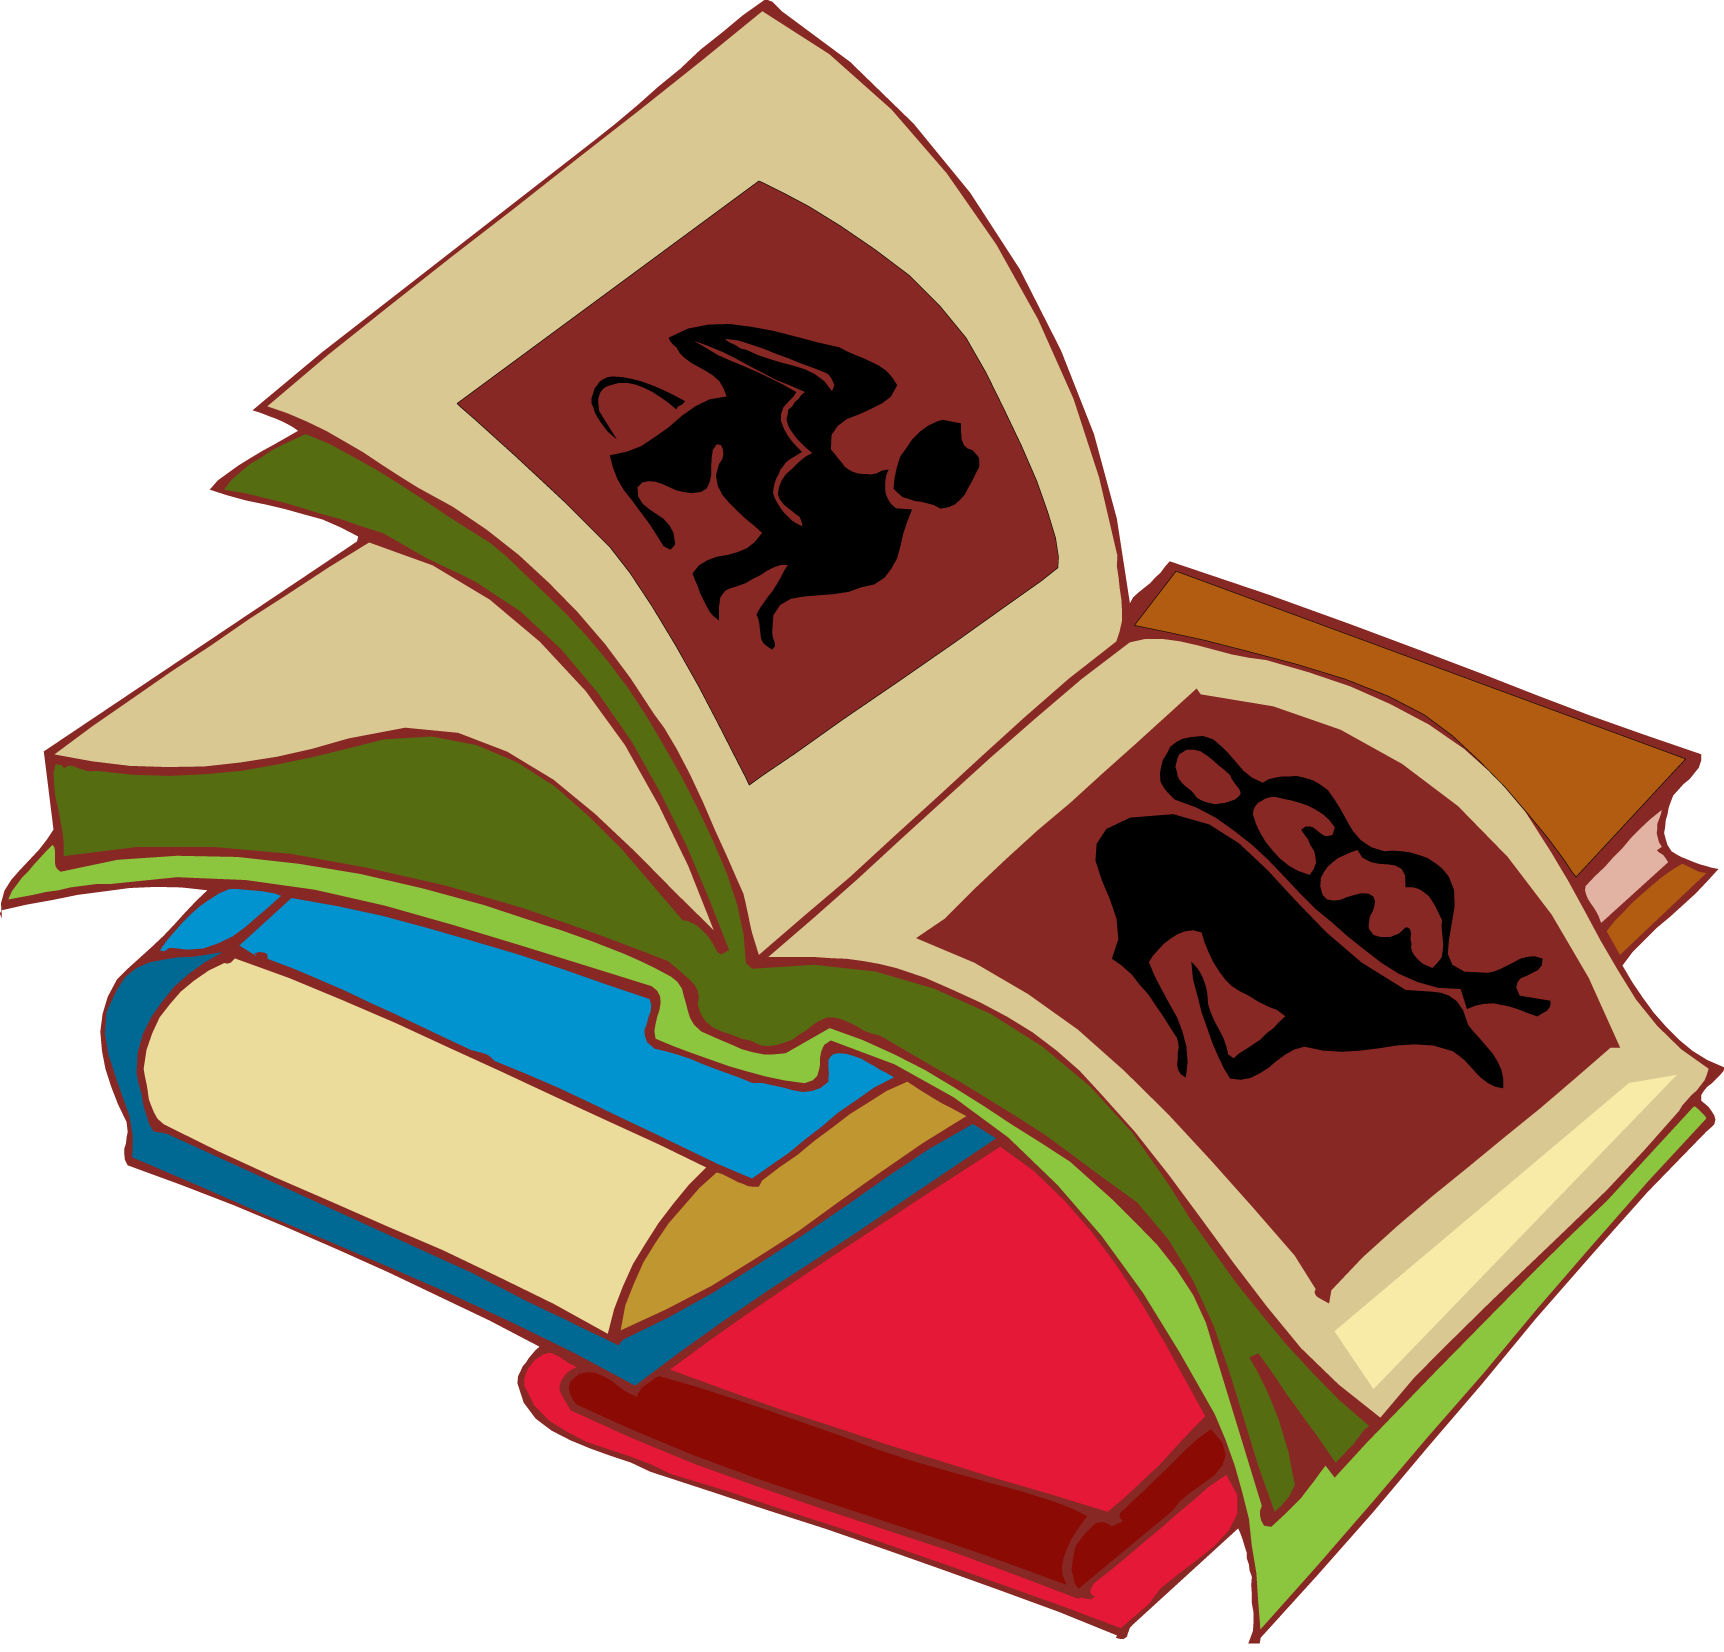 Row of books illustration clipart panda free clipart for Best sites for selling art